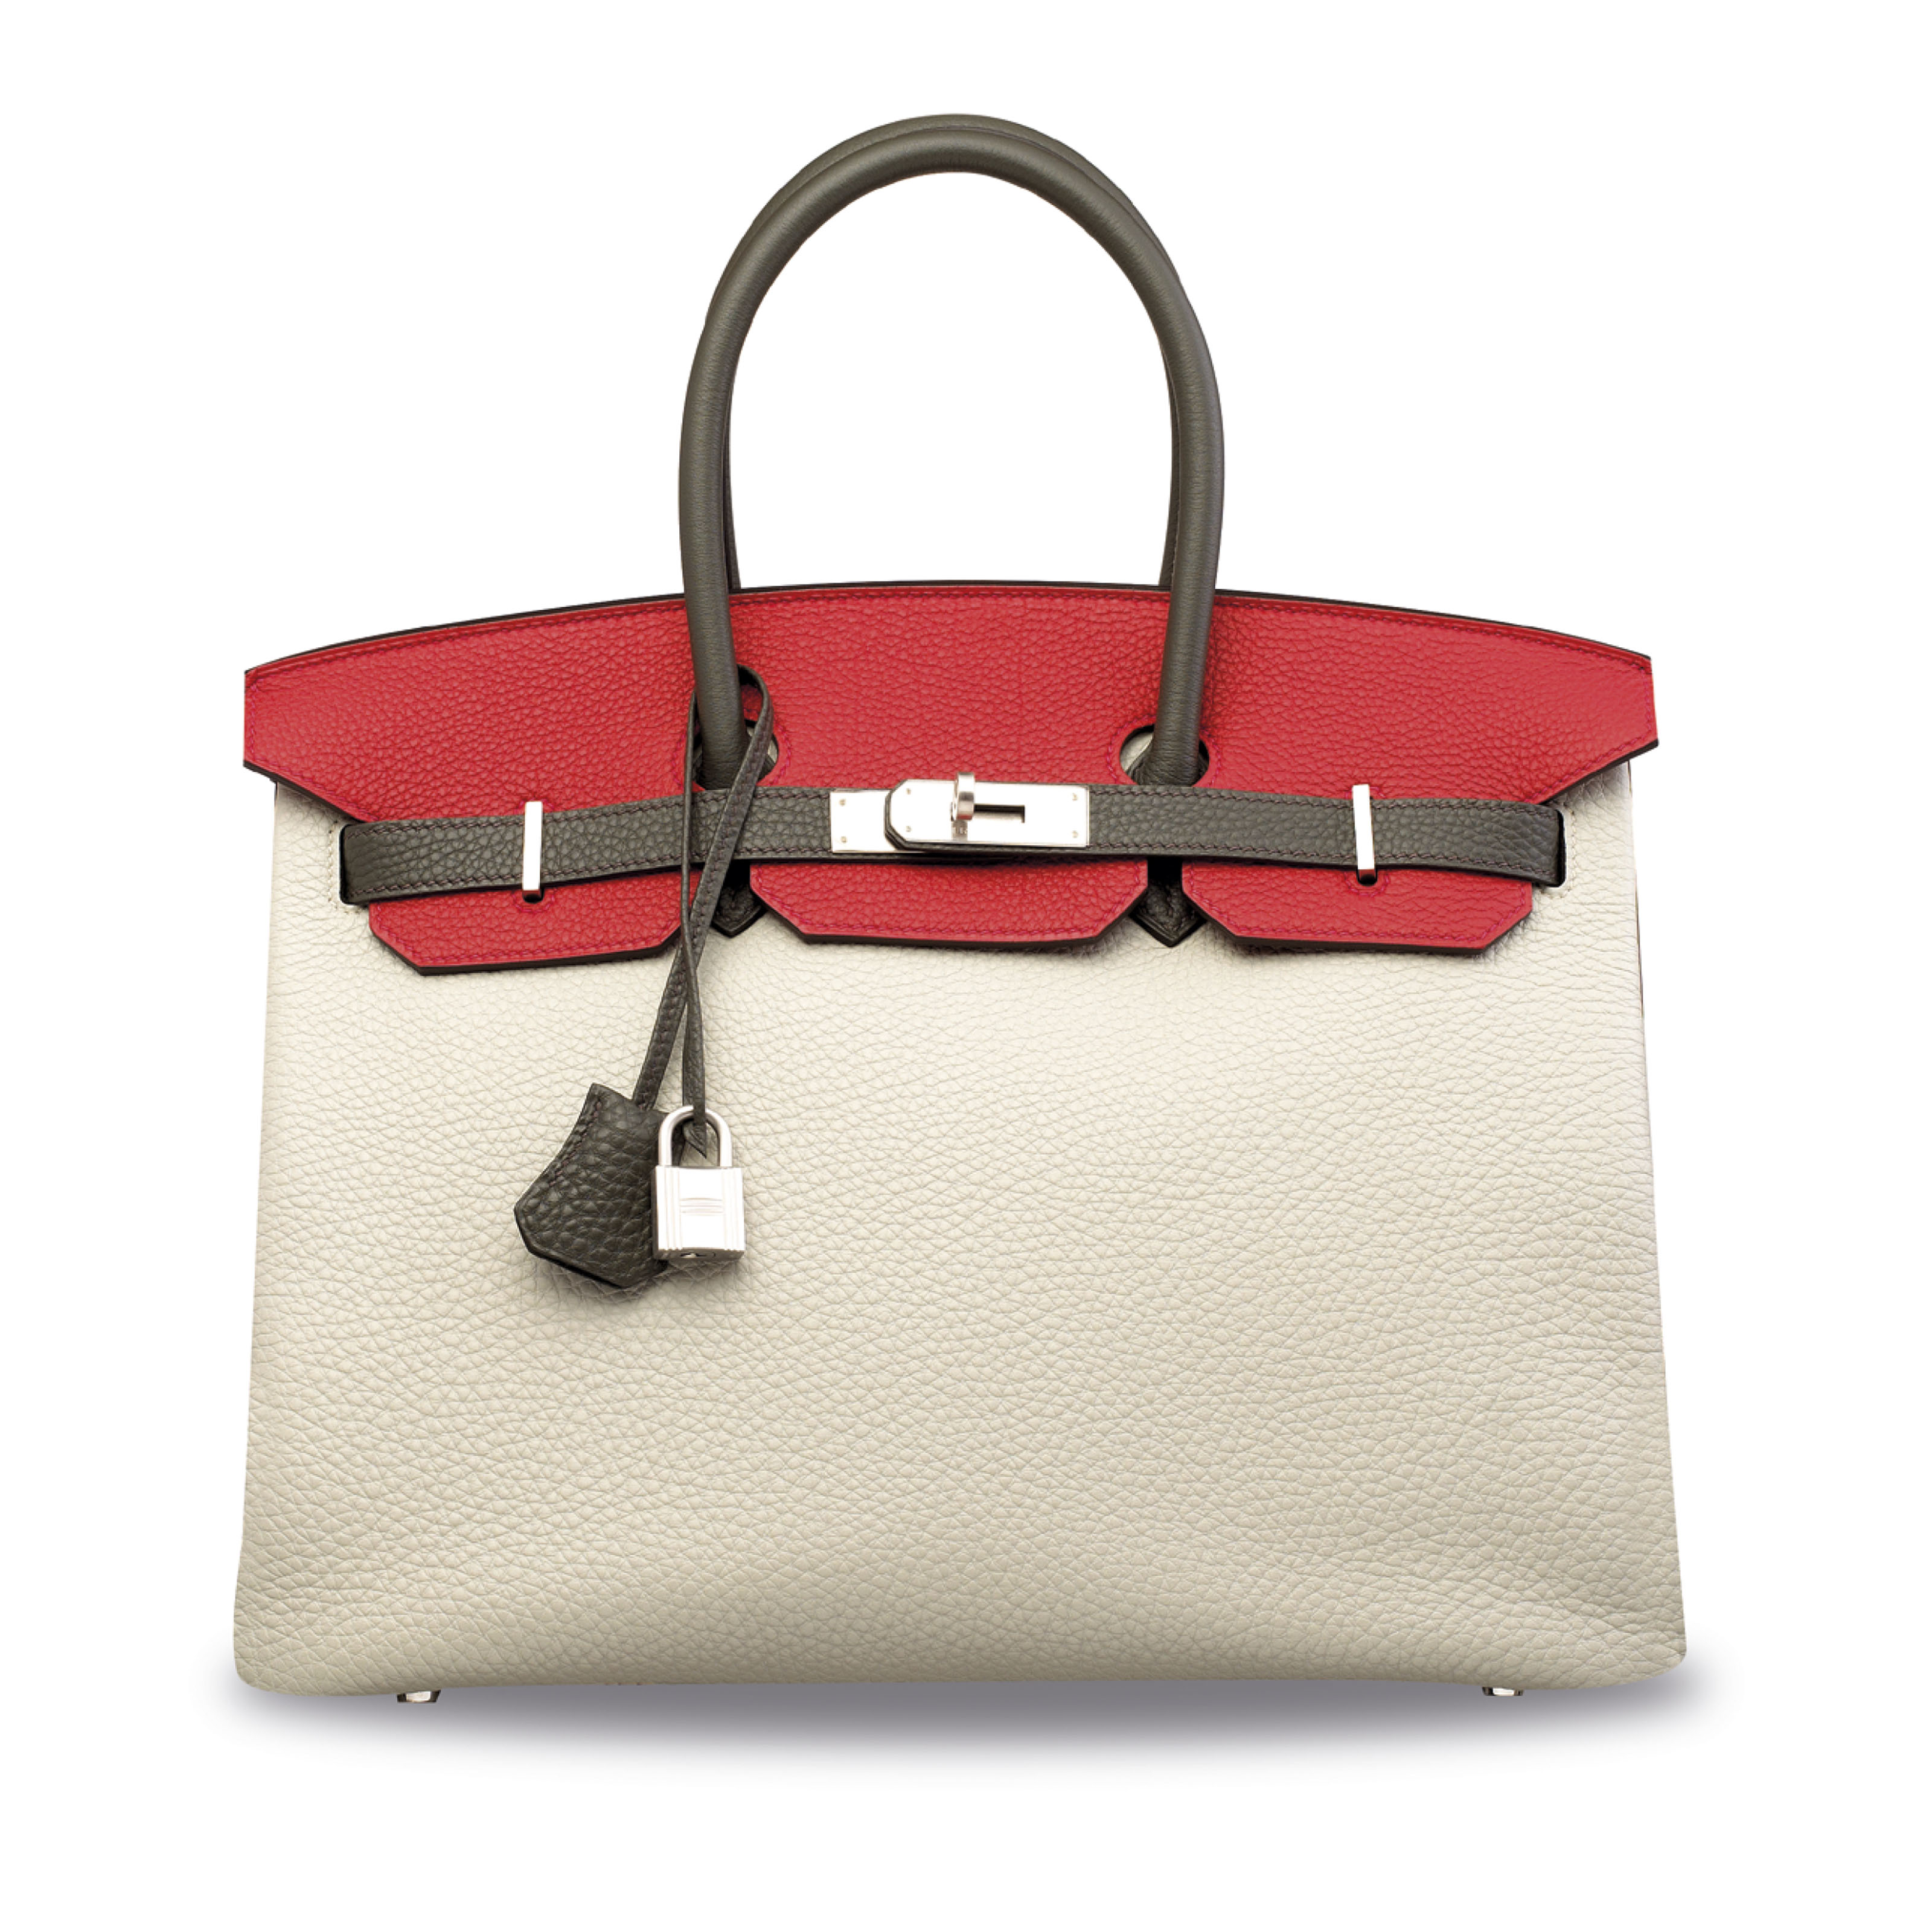 A CUSTOM GRIS PERLE, ROUGE CASAQUE & GRAPHITE CLÉMENCE LEATHER BIRKIN 35 WITH BRUSHED PALLADIUM HARDWARE